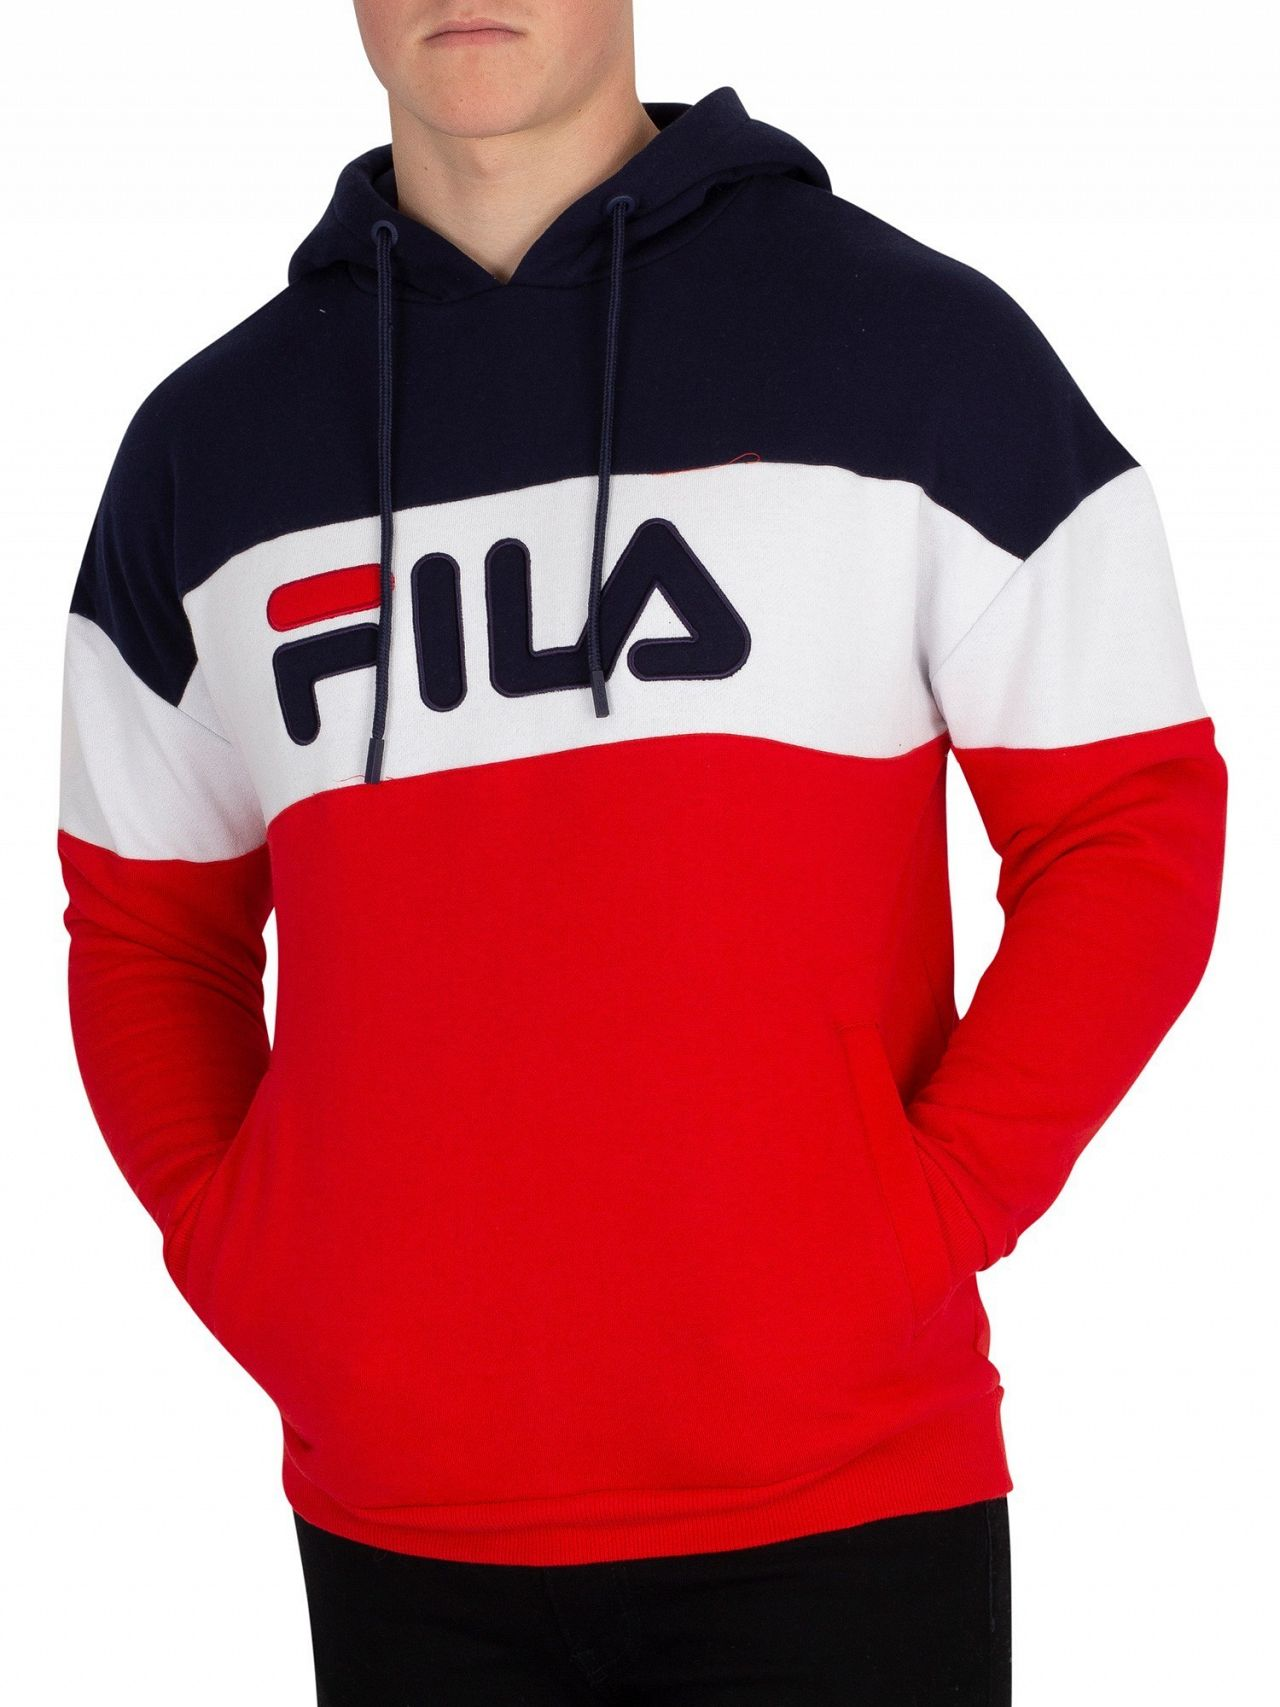 cd6f097caea9 Fila Red/Peacoat/White Rayton Colour Block Pullover Hoodie | Standout